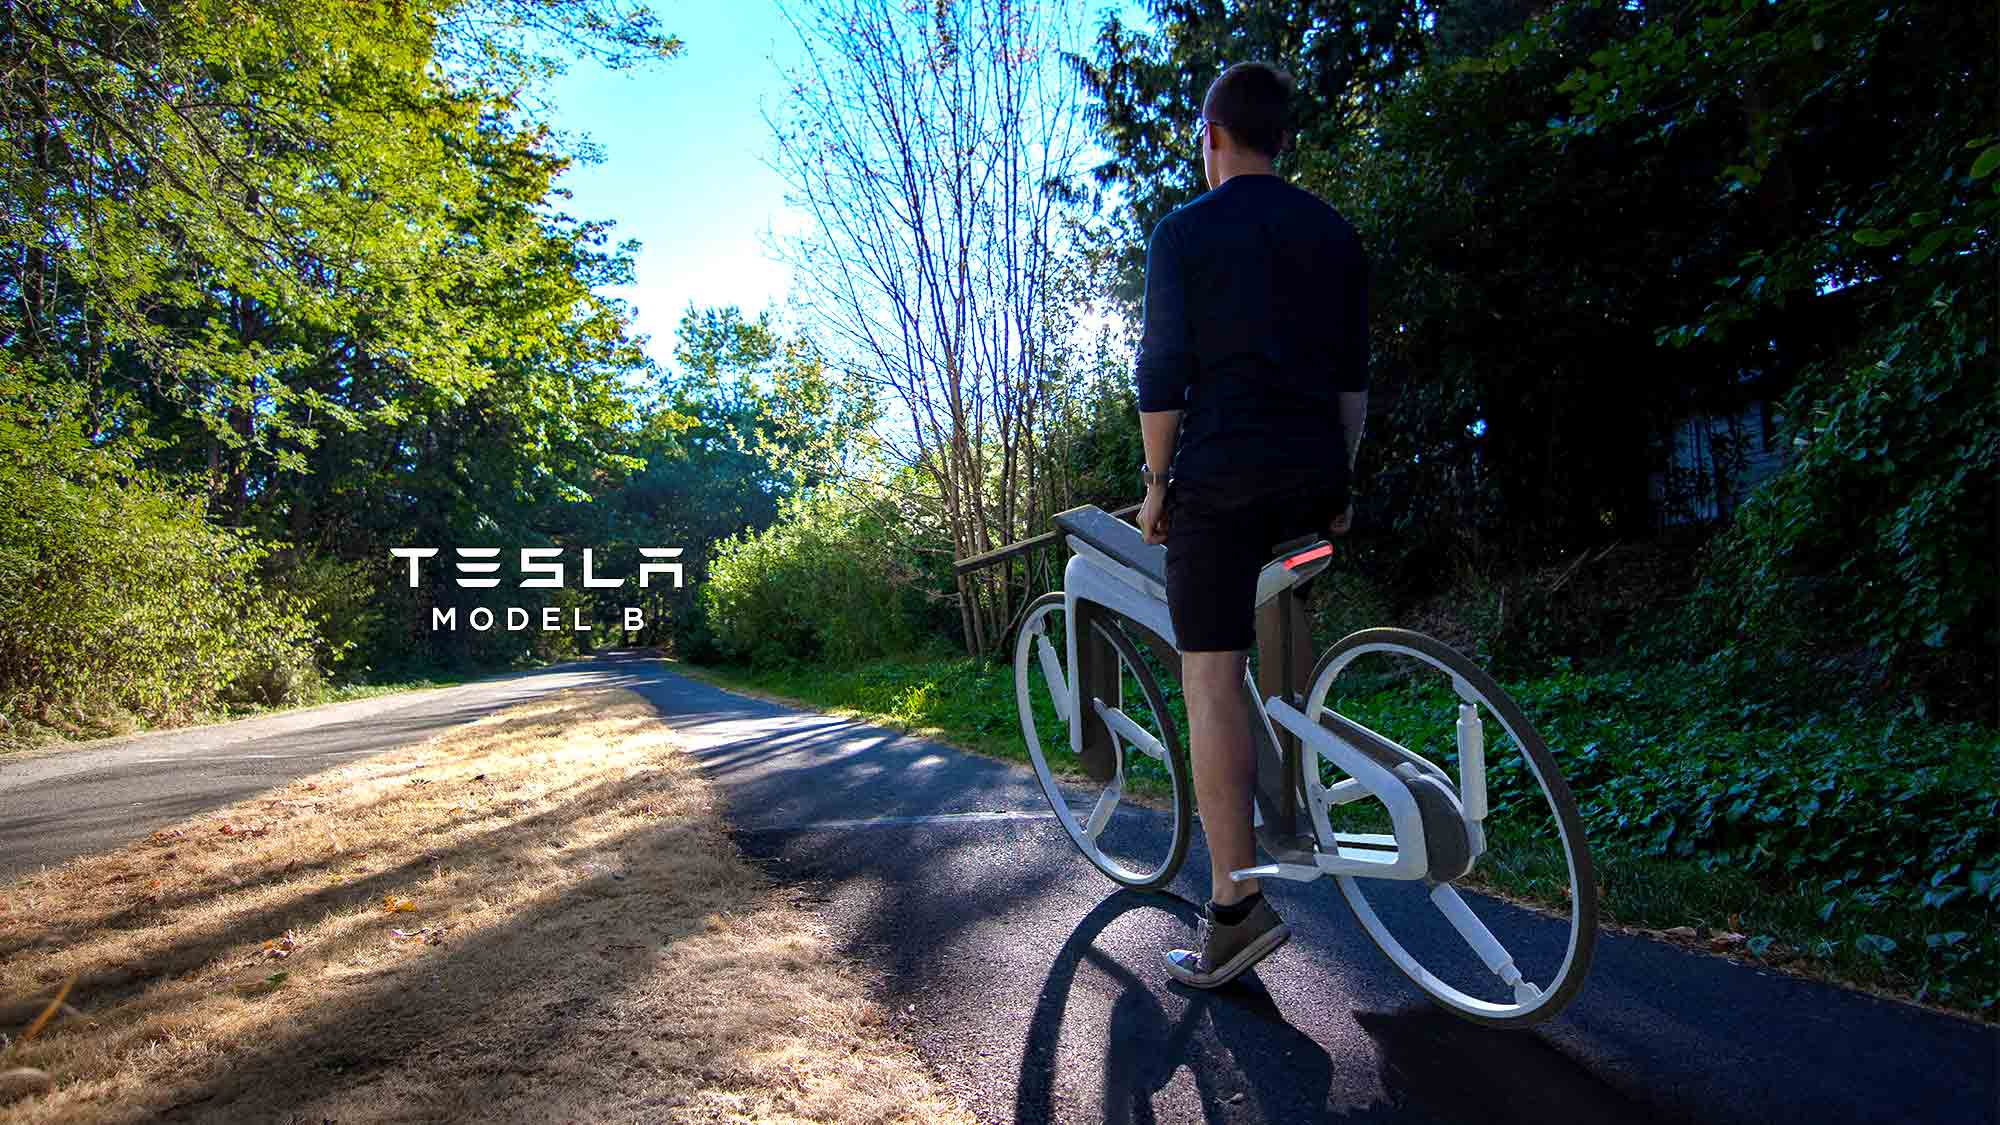 Tesla Concept Electric Bicycle by Kendall Toerner